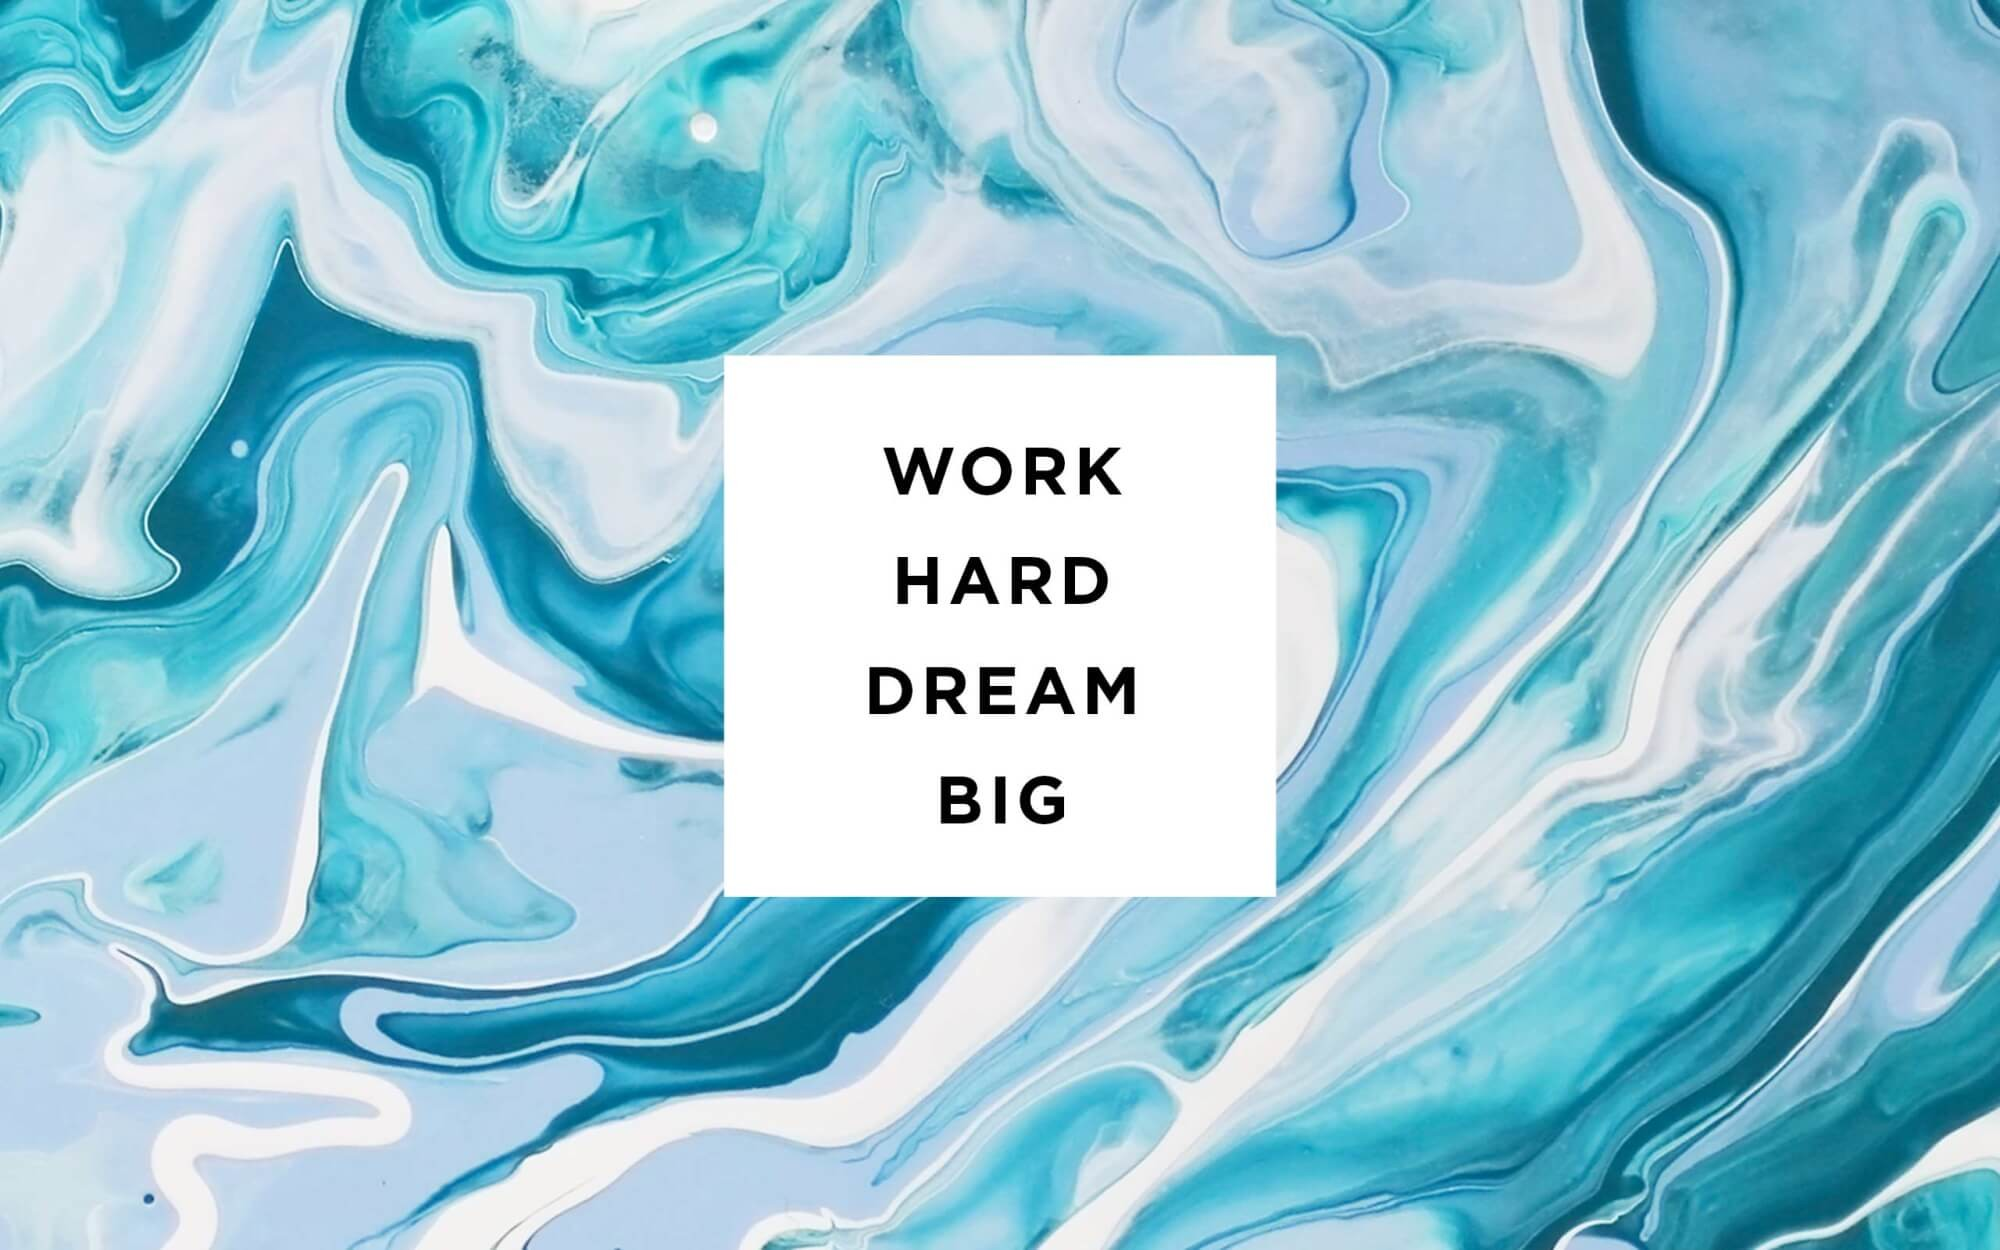 2000x1250 Click to Download 'Work Hard Dream Big'